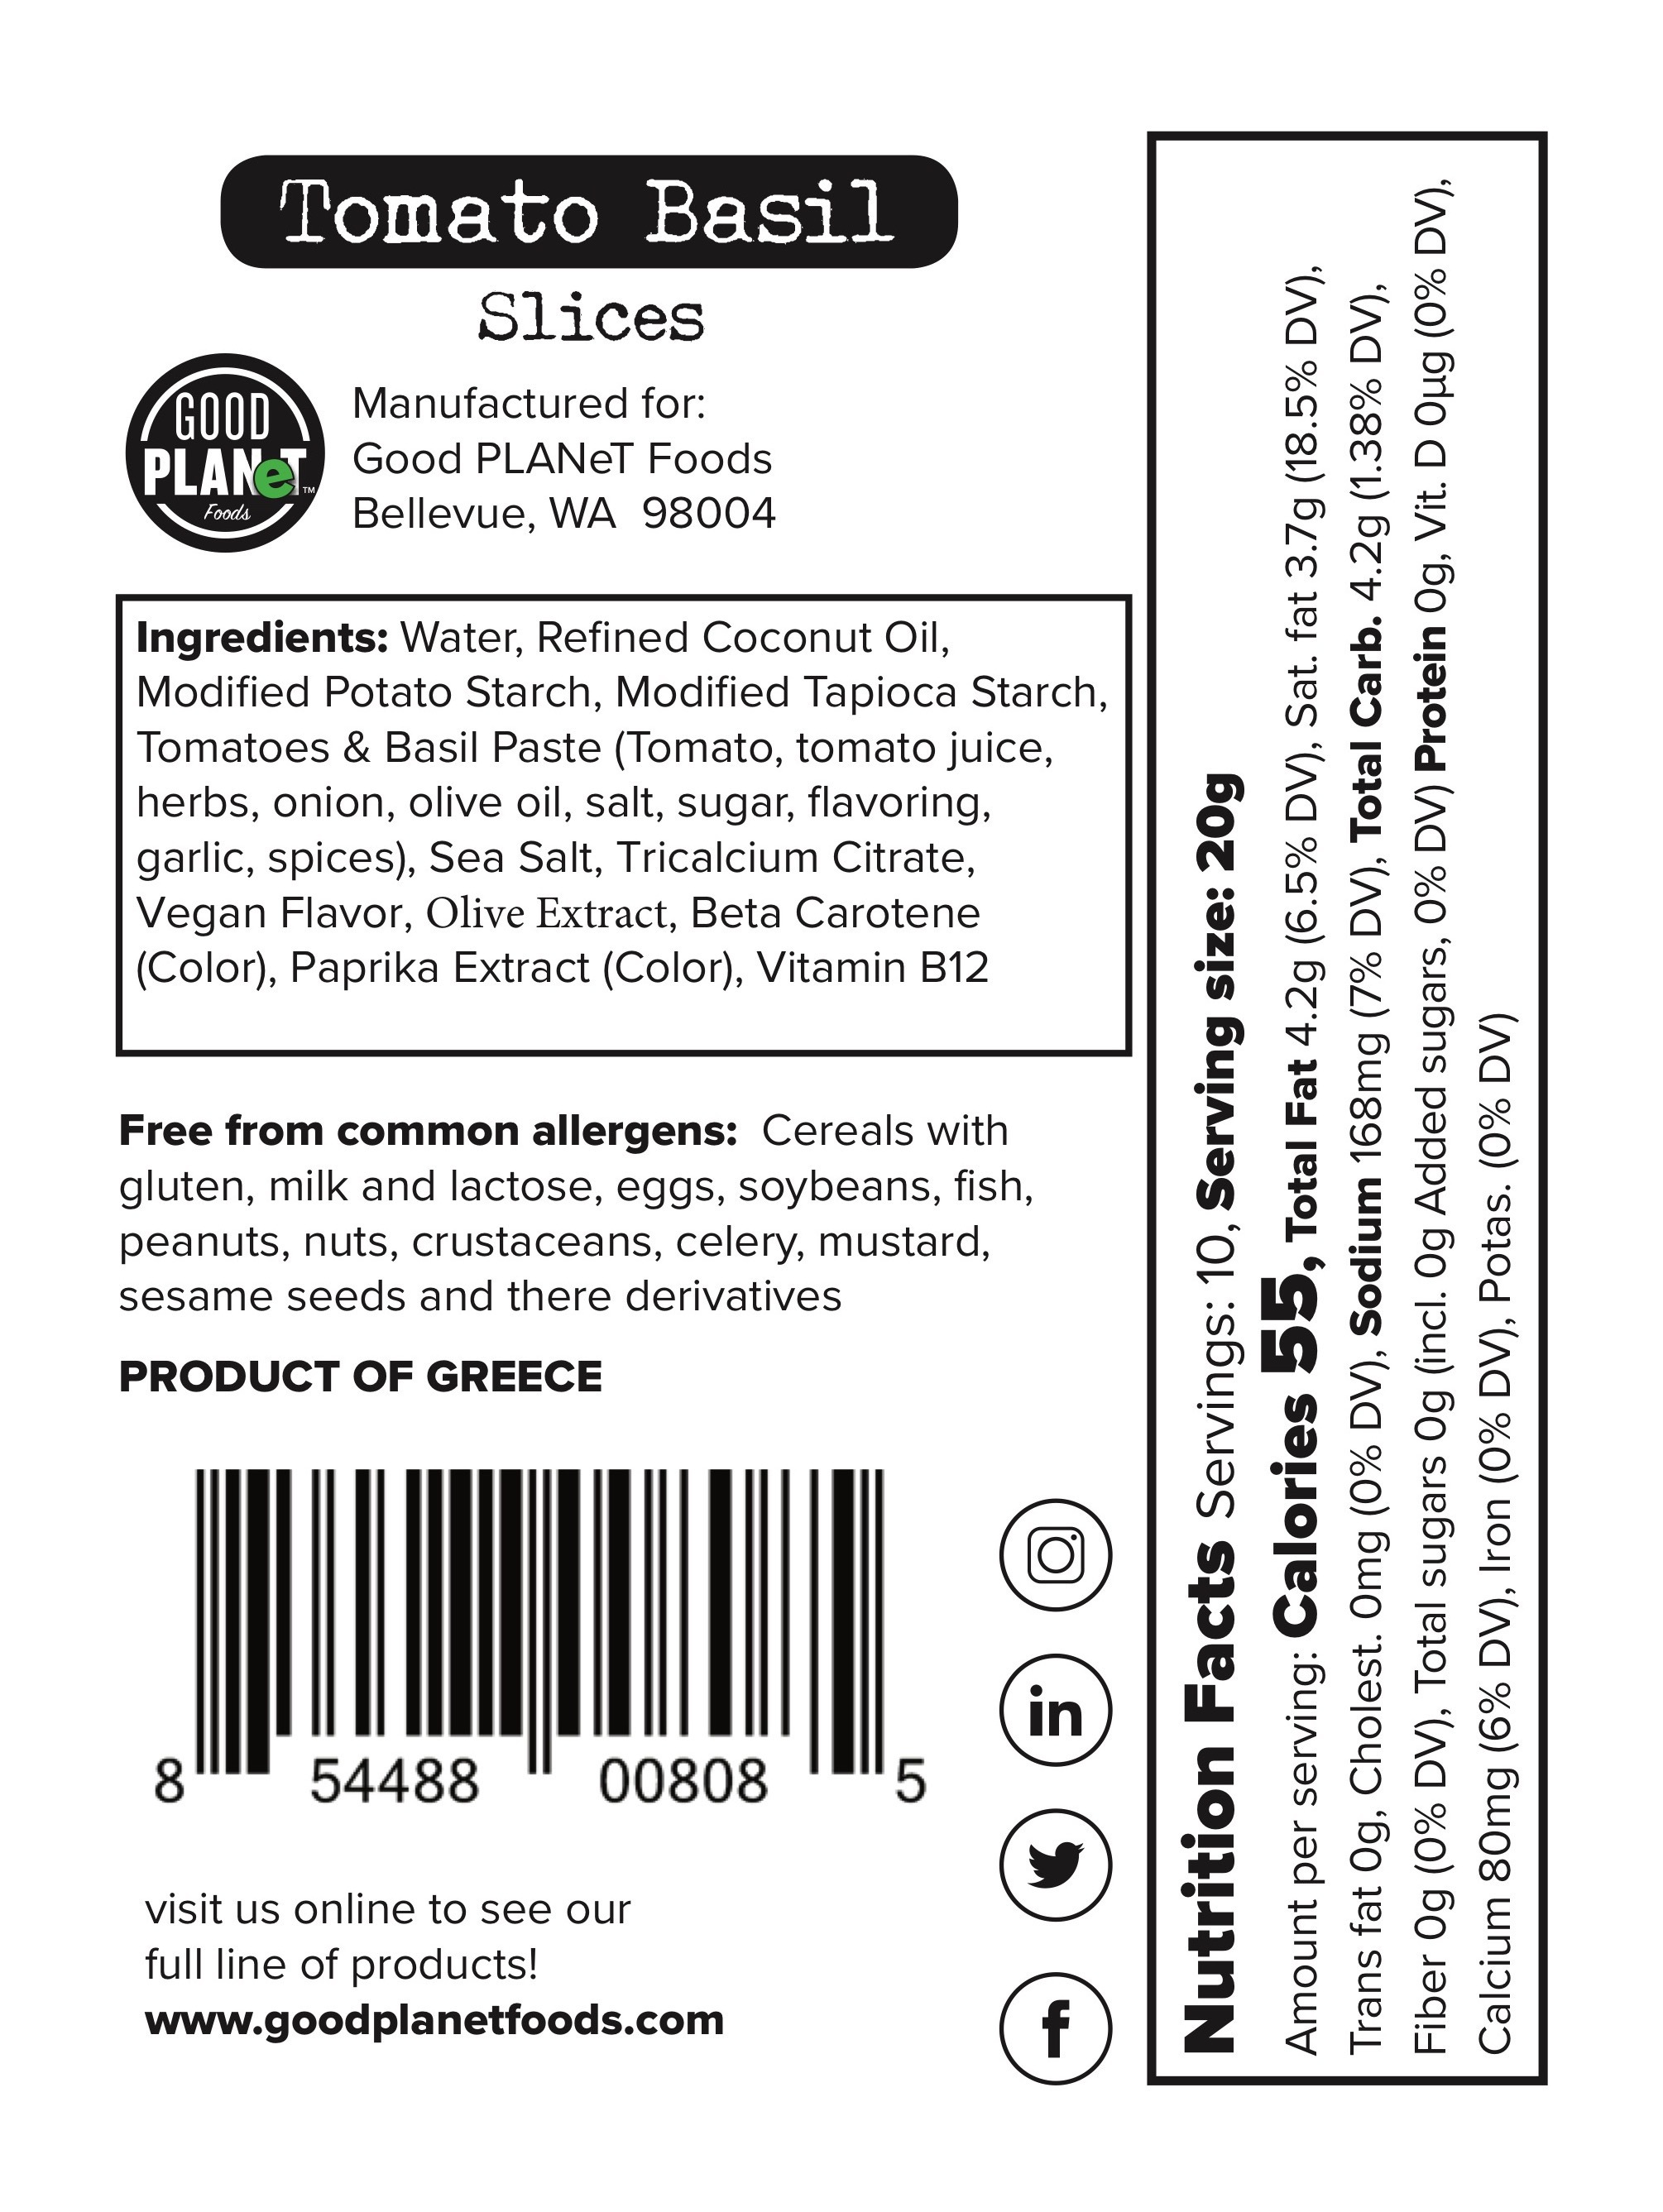 Dairy-free Cheese Tomato Basil Slices | The Natural Products Brands